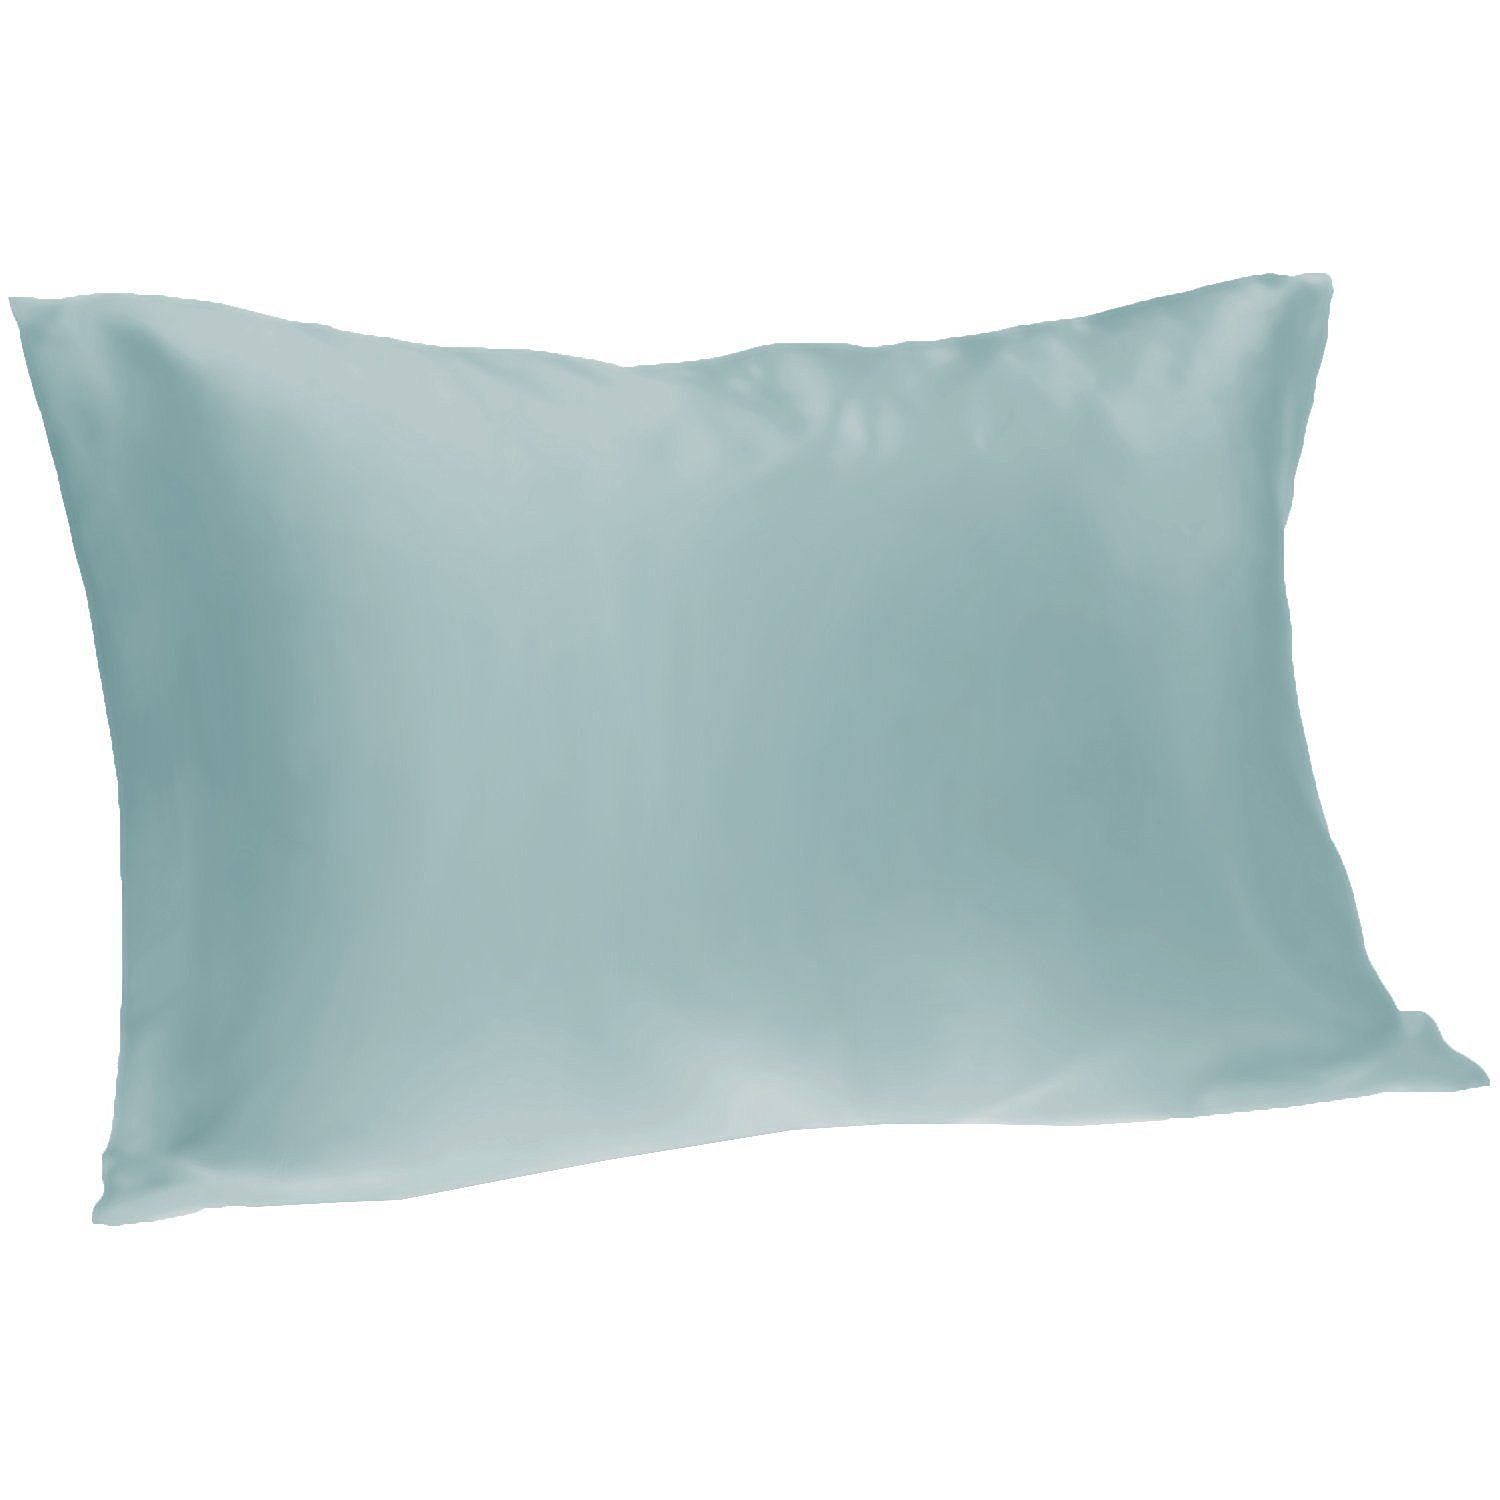 Spasilk 100 Percent Silky Satin Hair Beauty Pillowcase, Standard/Queen, Light Blue by Spasilk